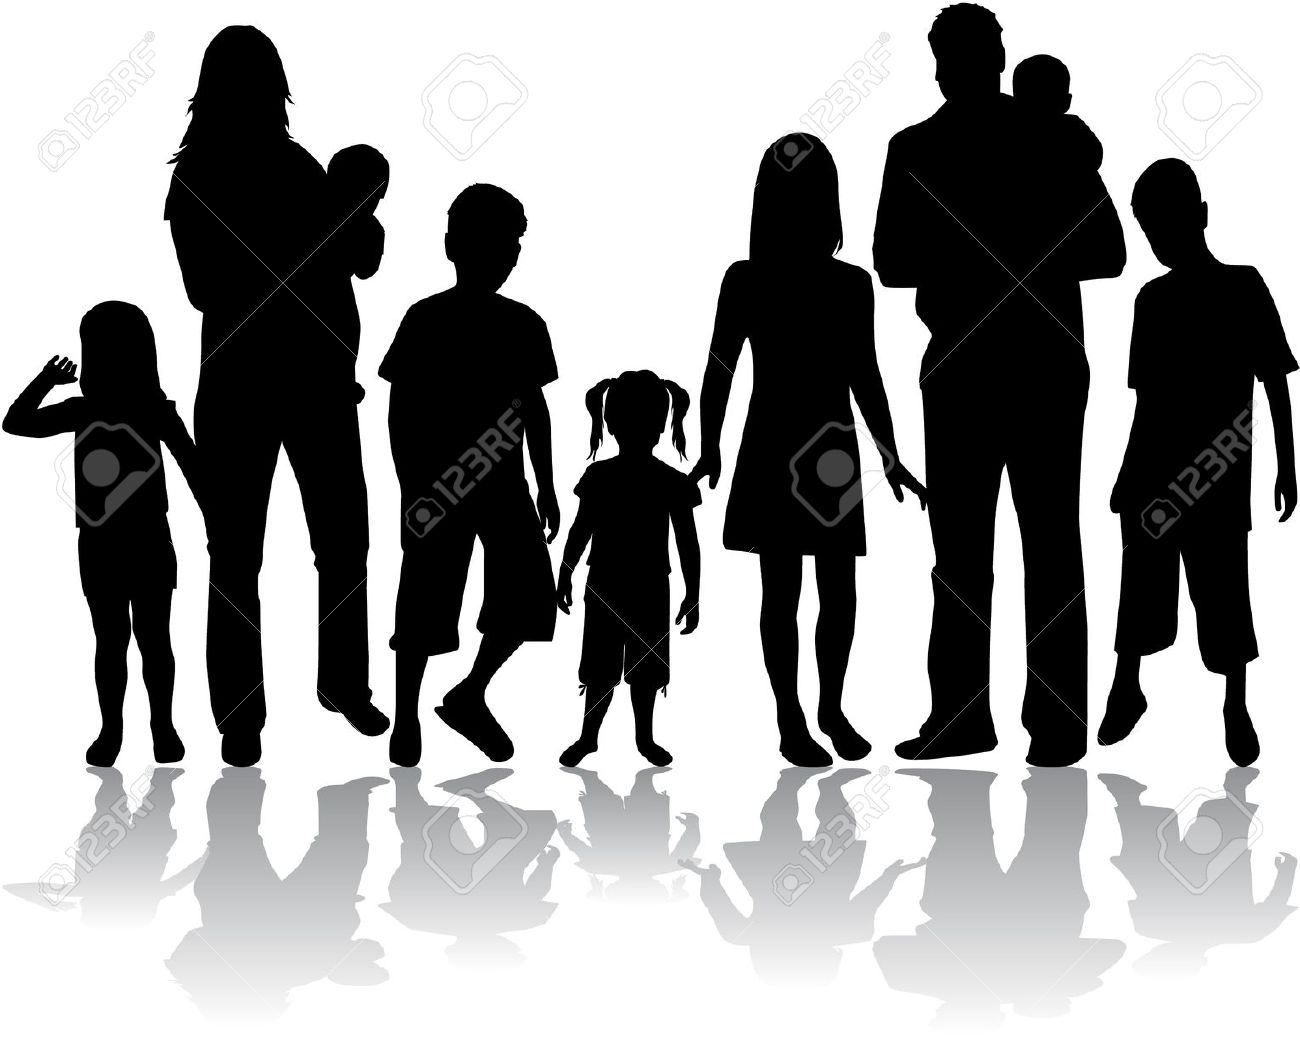 family silhouette: Profiles of .